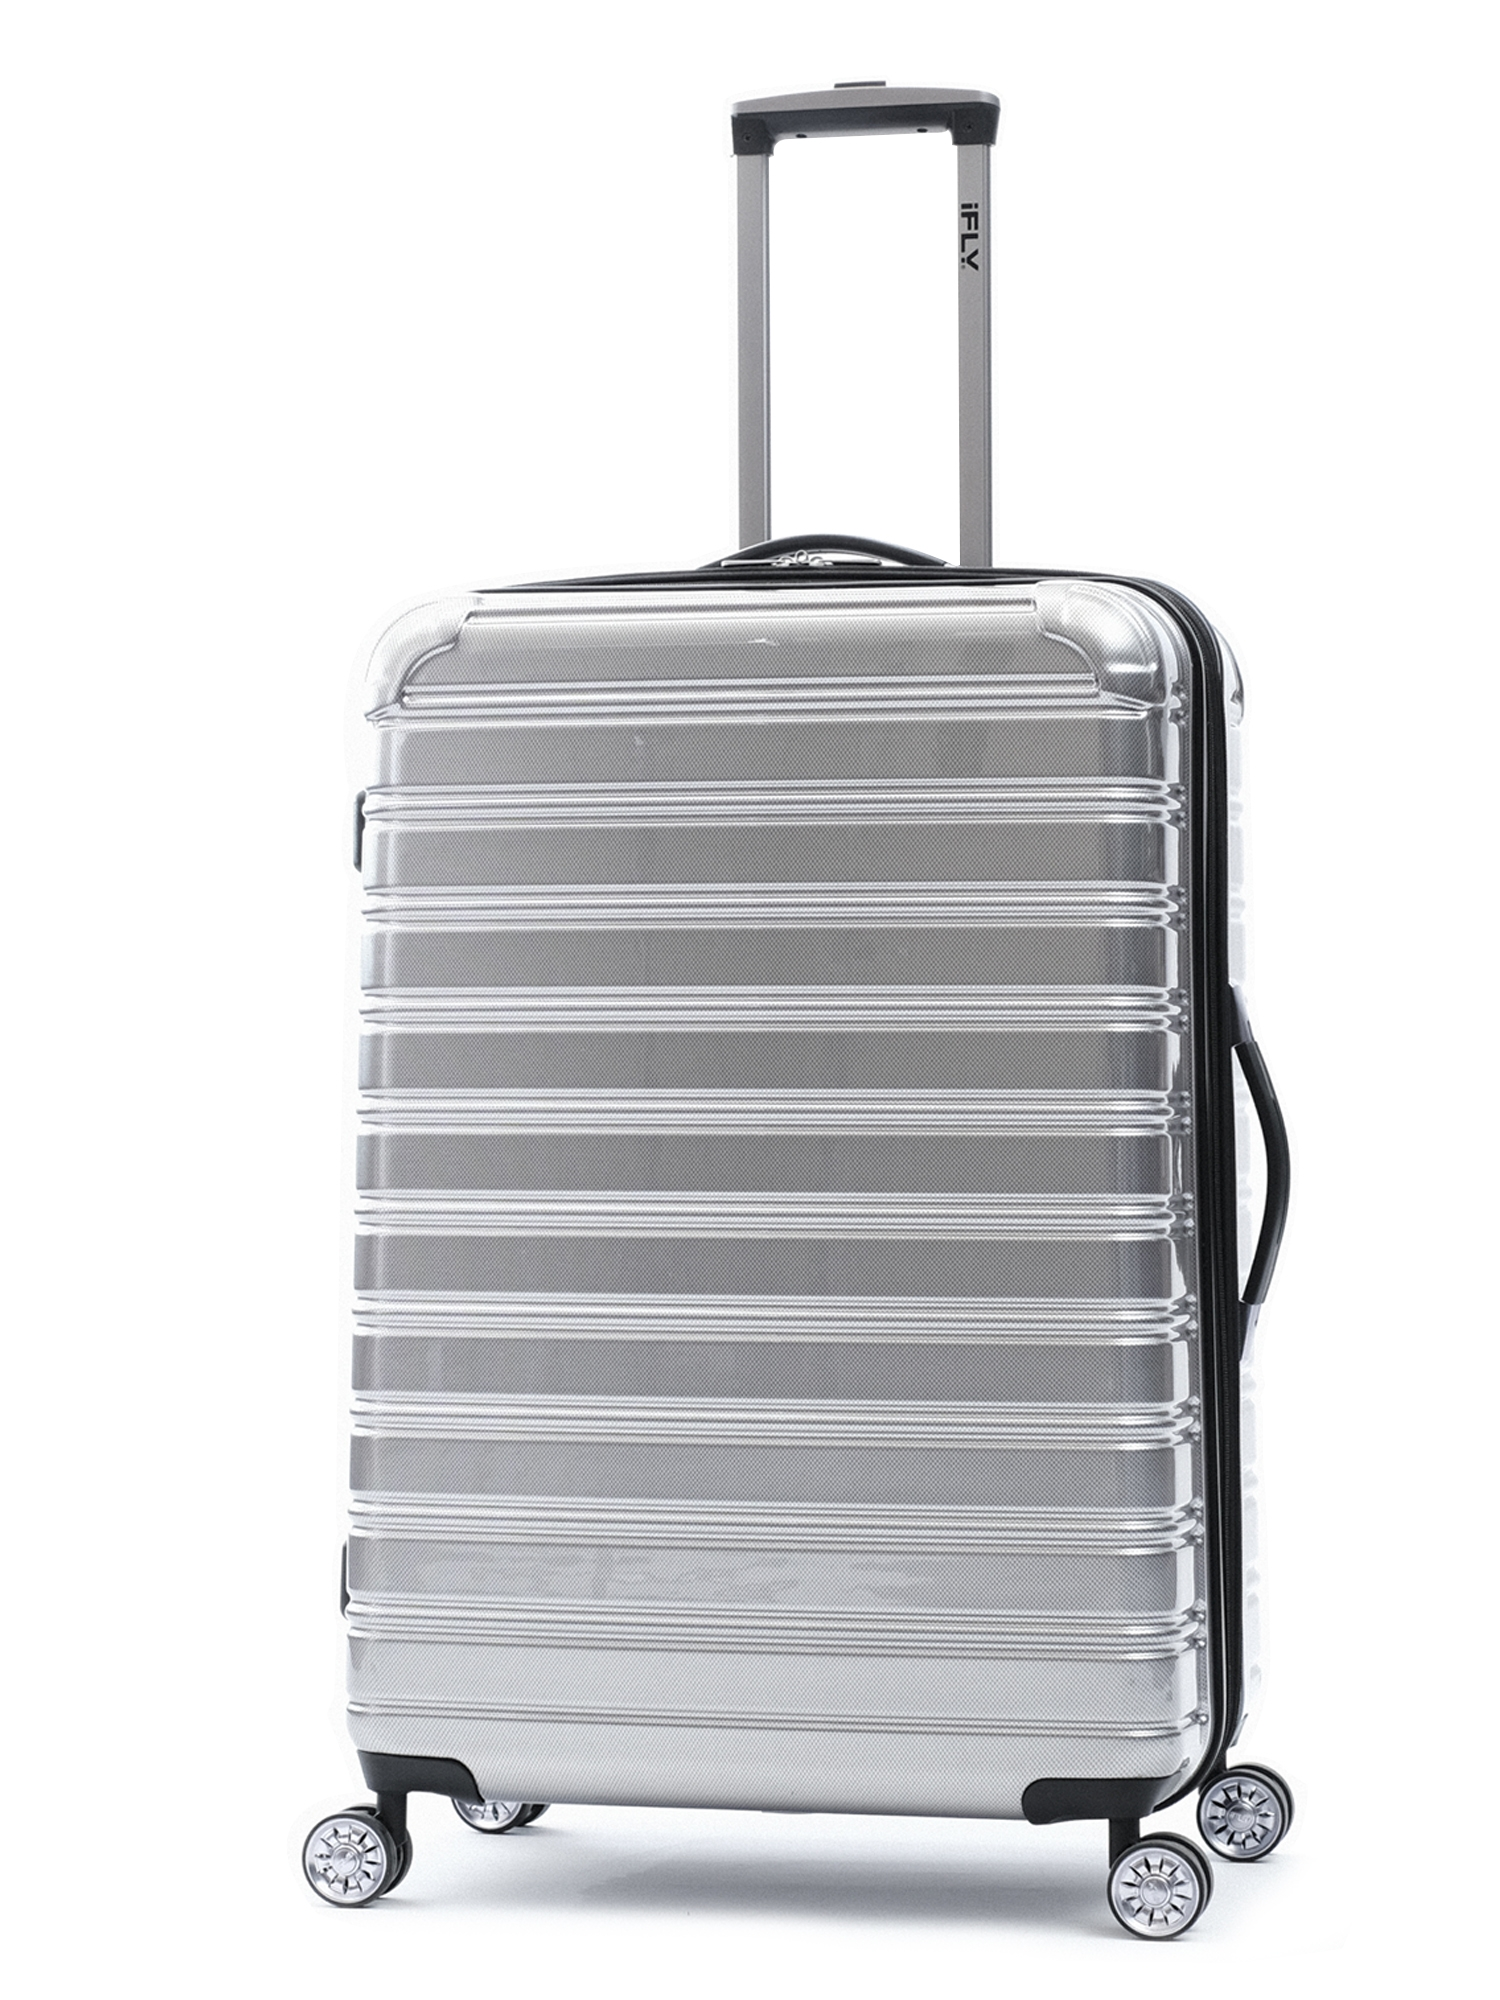 "iFLY Hard Sided Fibertech 28"" Checked Luggage"